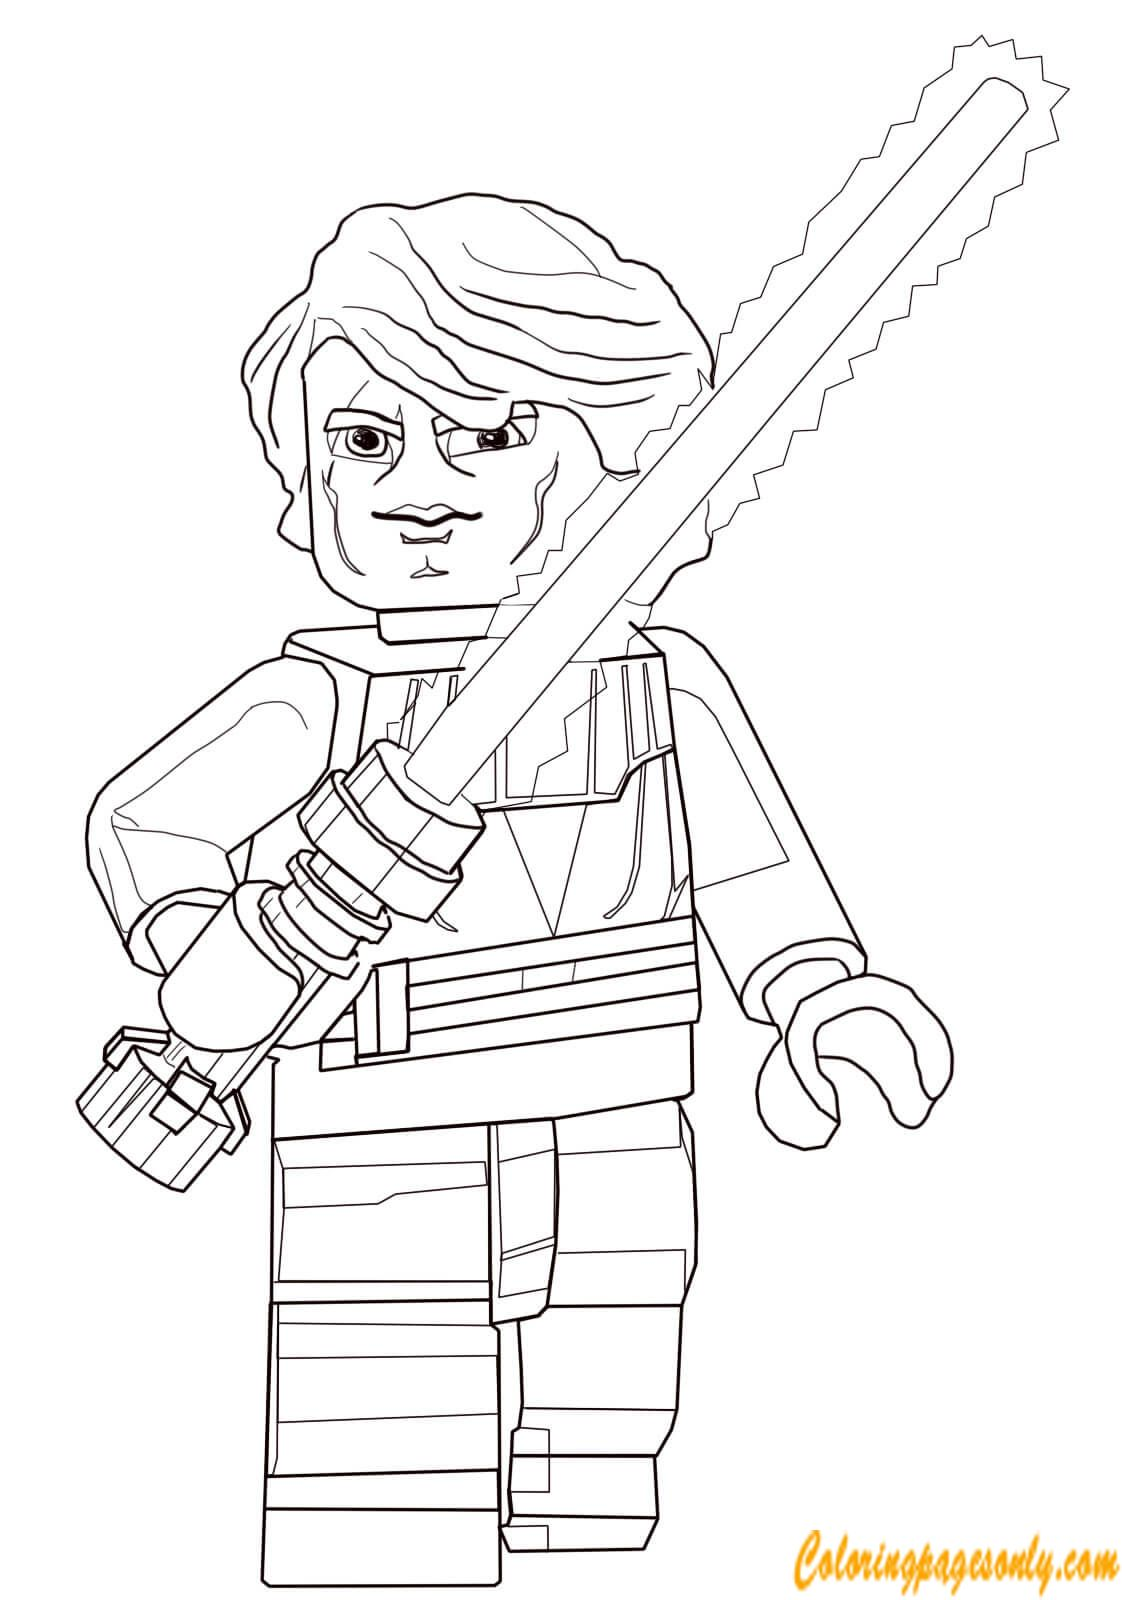 Anakin Skywalker From Lego Star Wars Coloring Page http ...